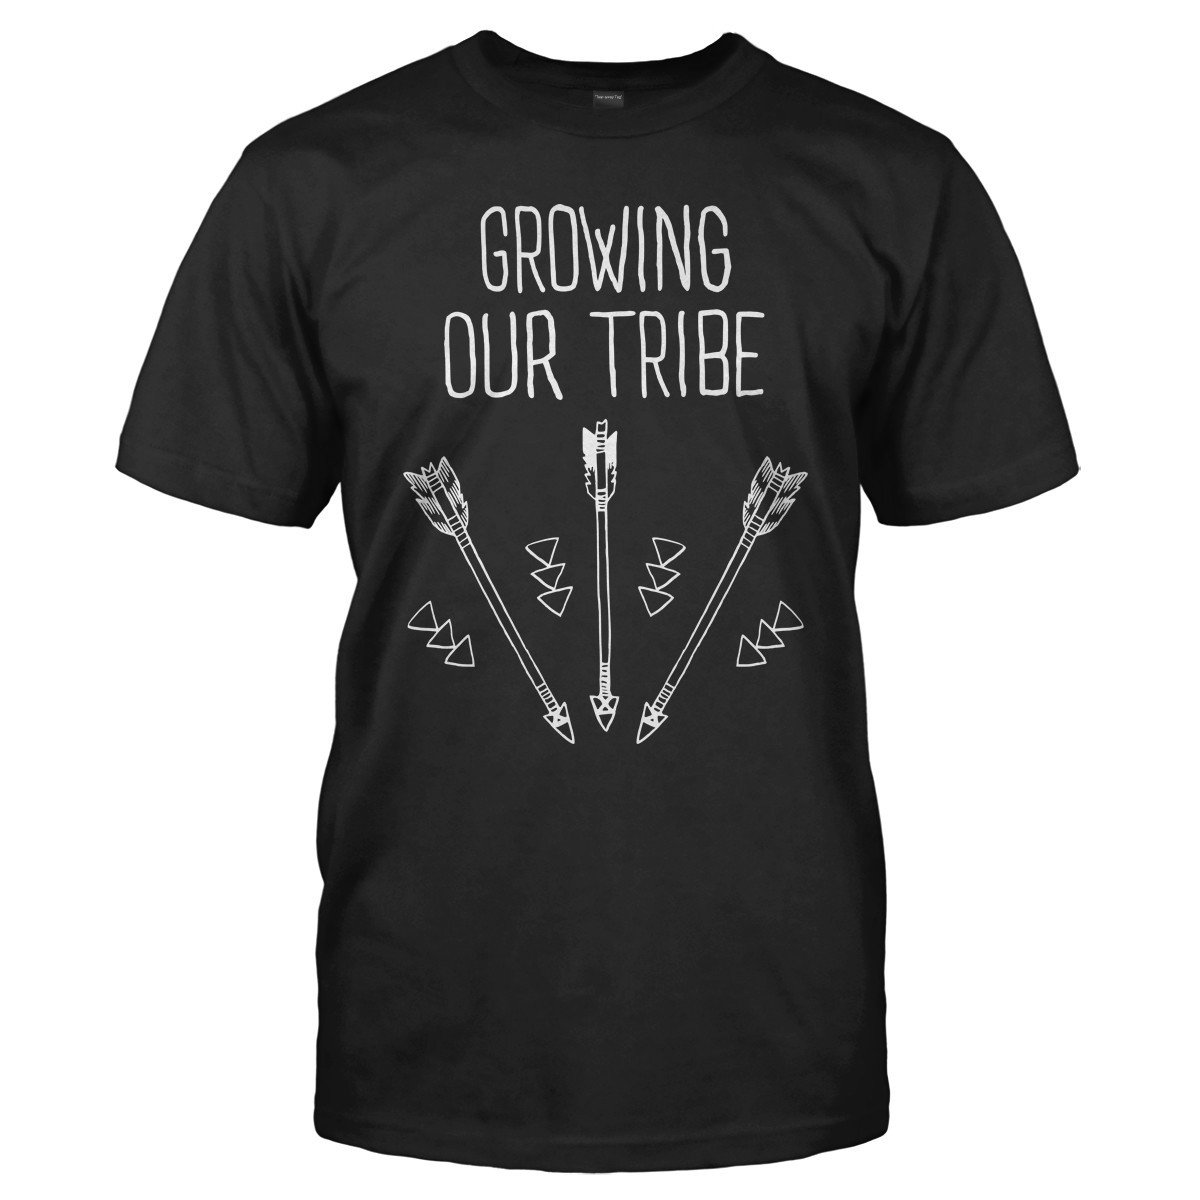 Growing Our Tribe - T Shirt